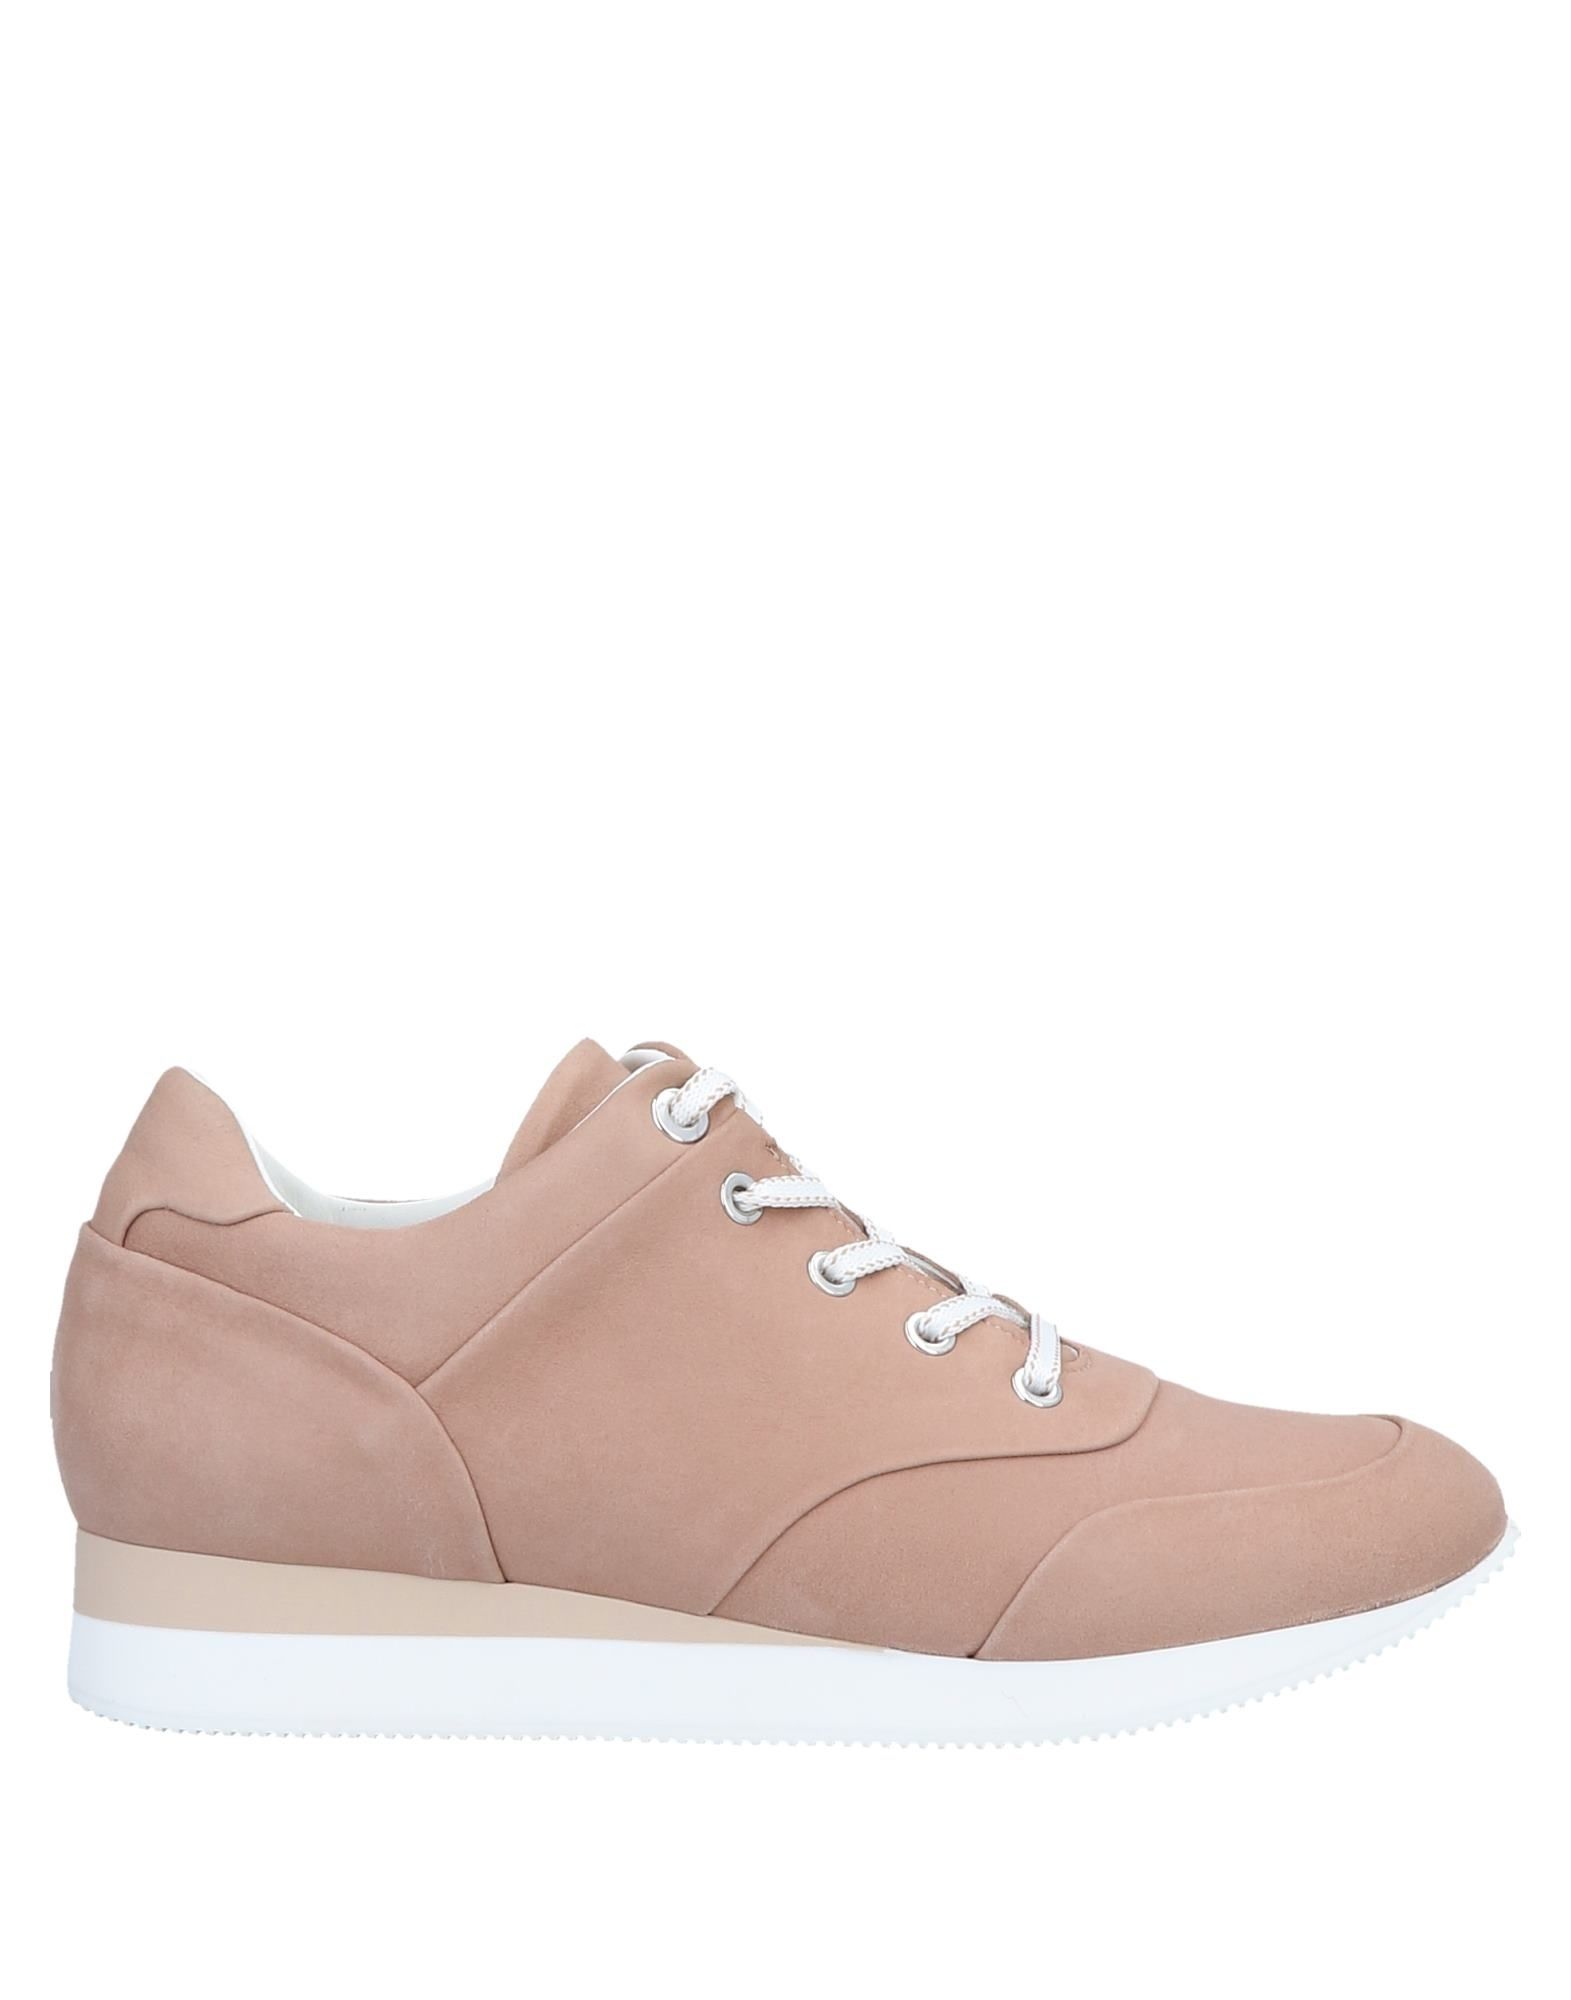 Max on Mara Sneakers - Women Max Mara Sneakers online on Max  Canada - 11570980LC 82577d